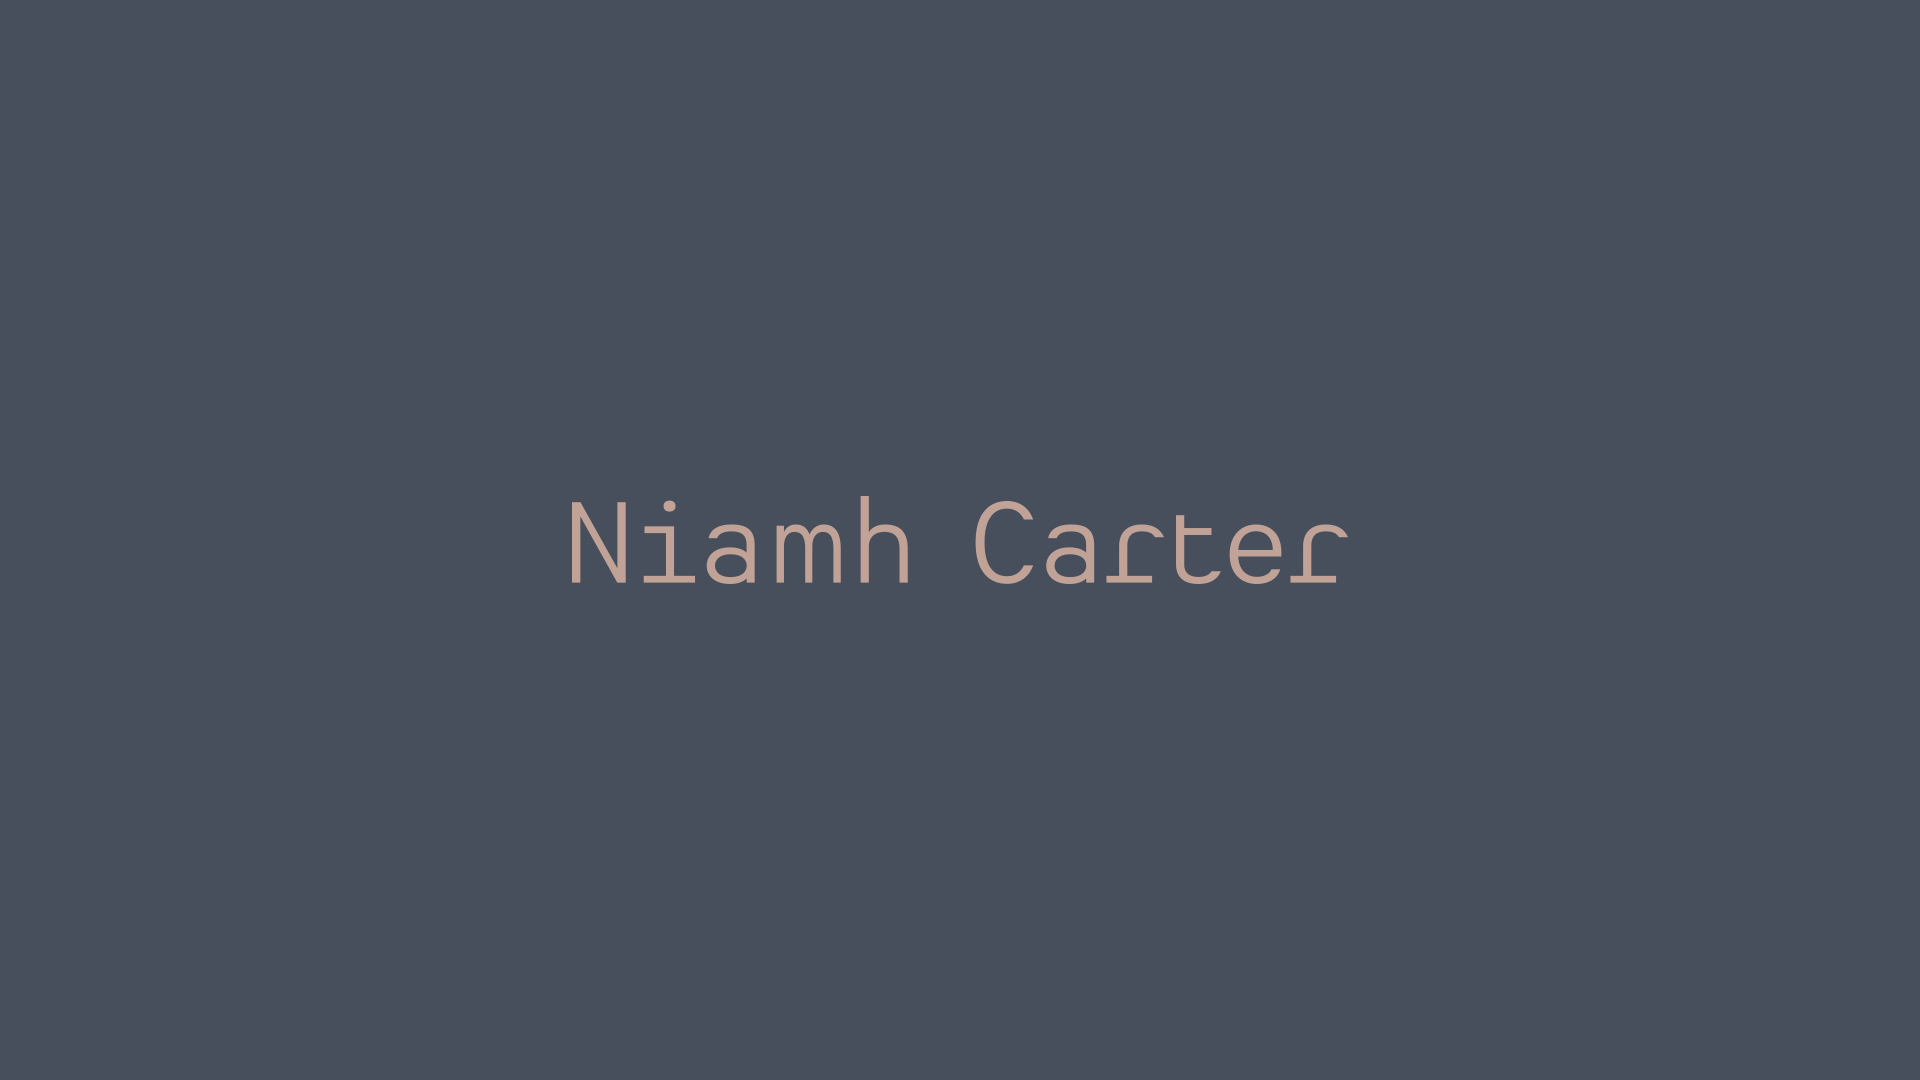 Cover image: Niamh Carter